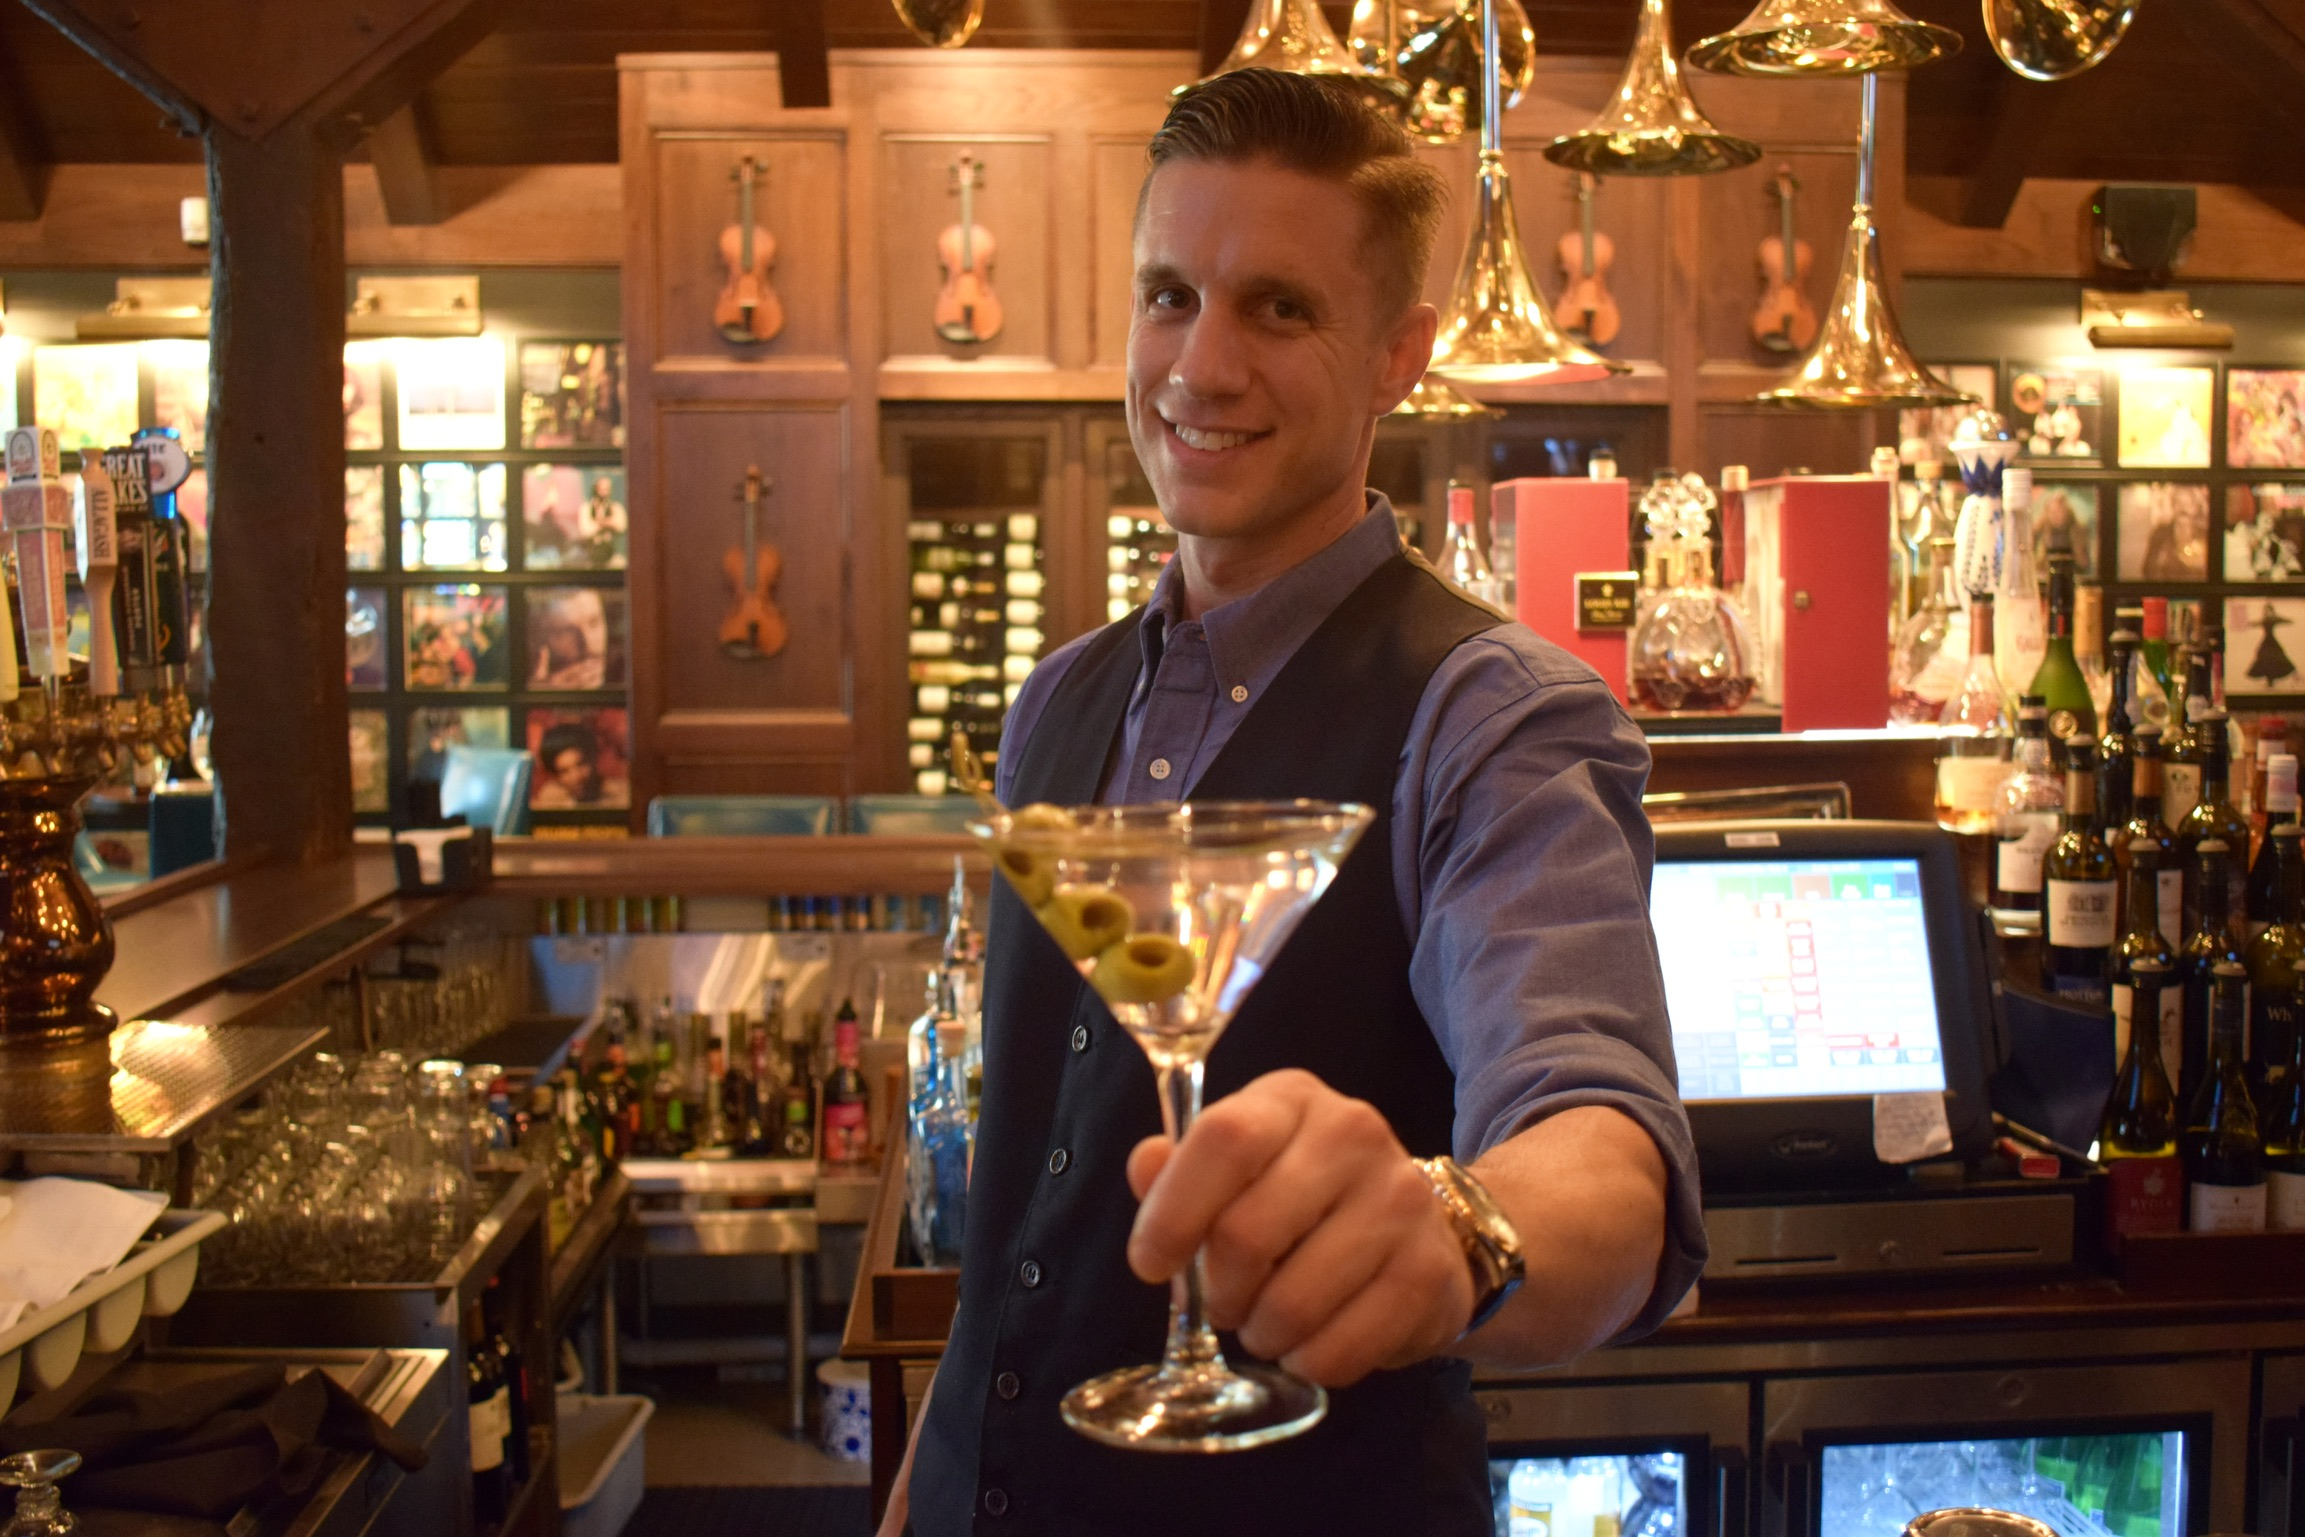 Friendly bartender serving a martini